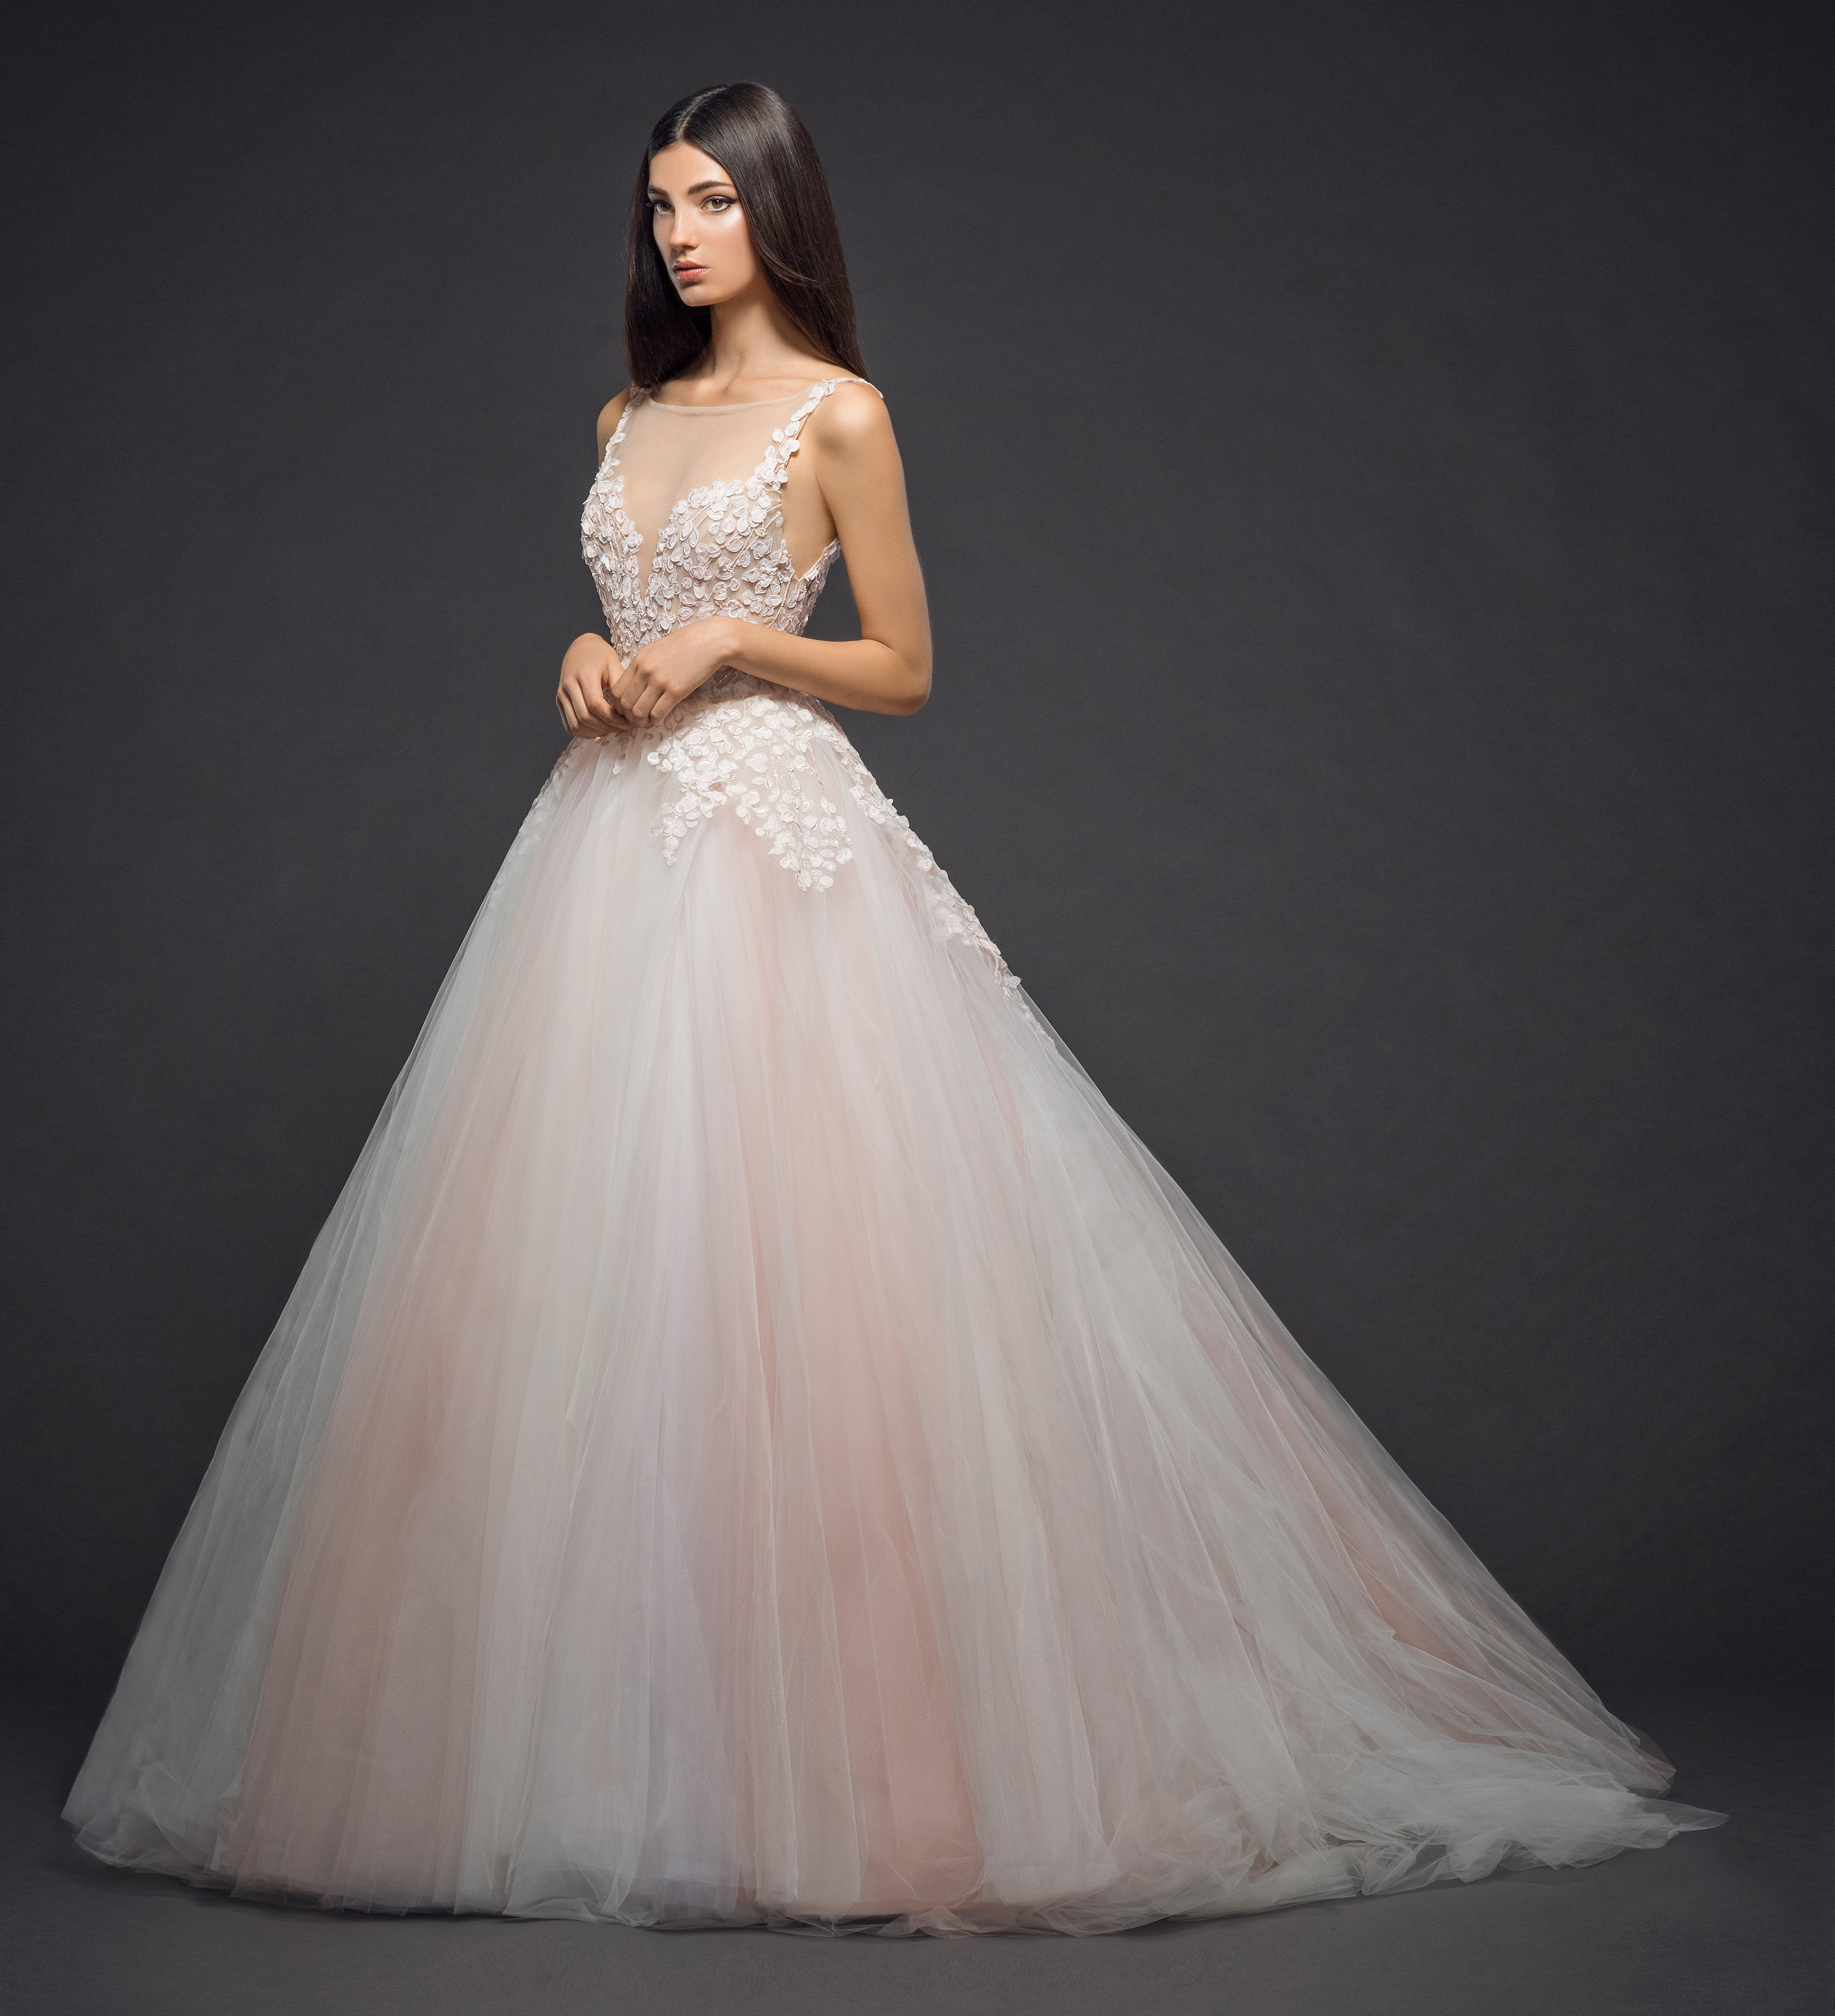 Tulle Ball Gown Wedding Dress: Floral Embroidery With An Illusion Neck And Tulle Skirt